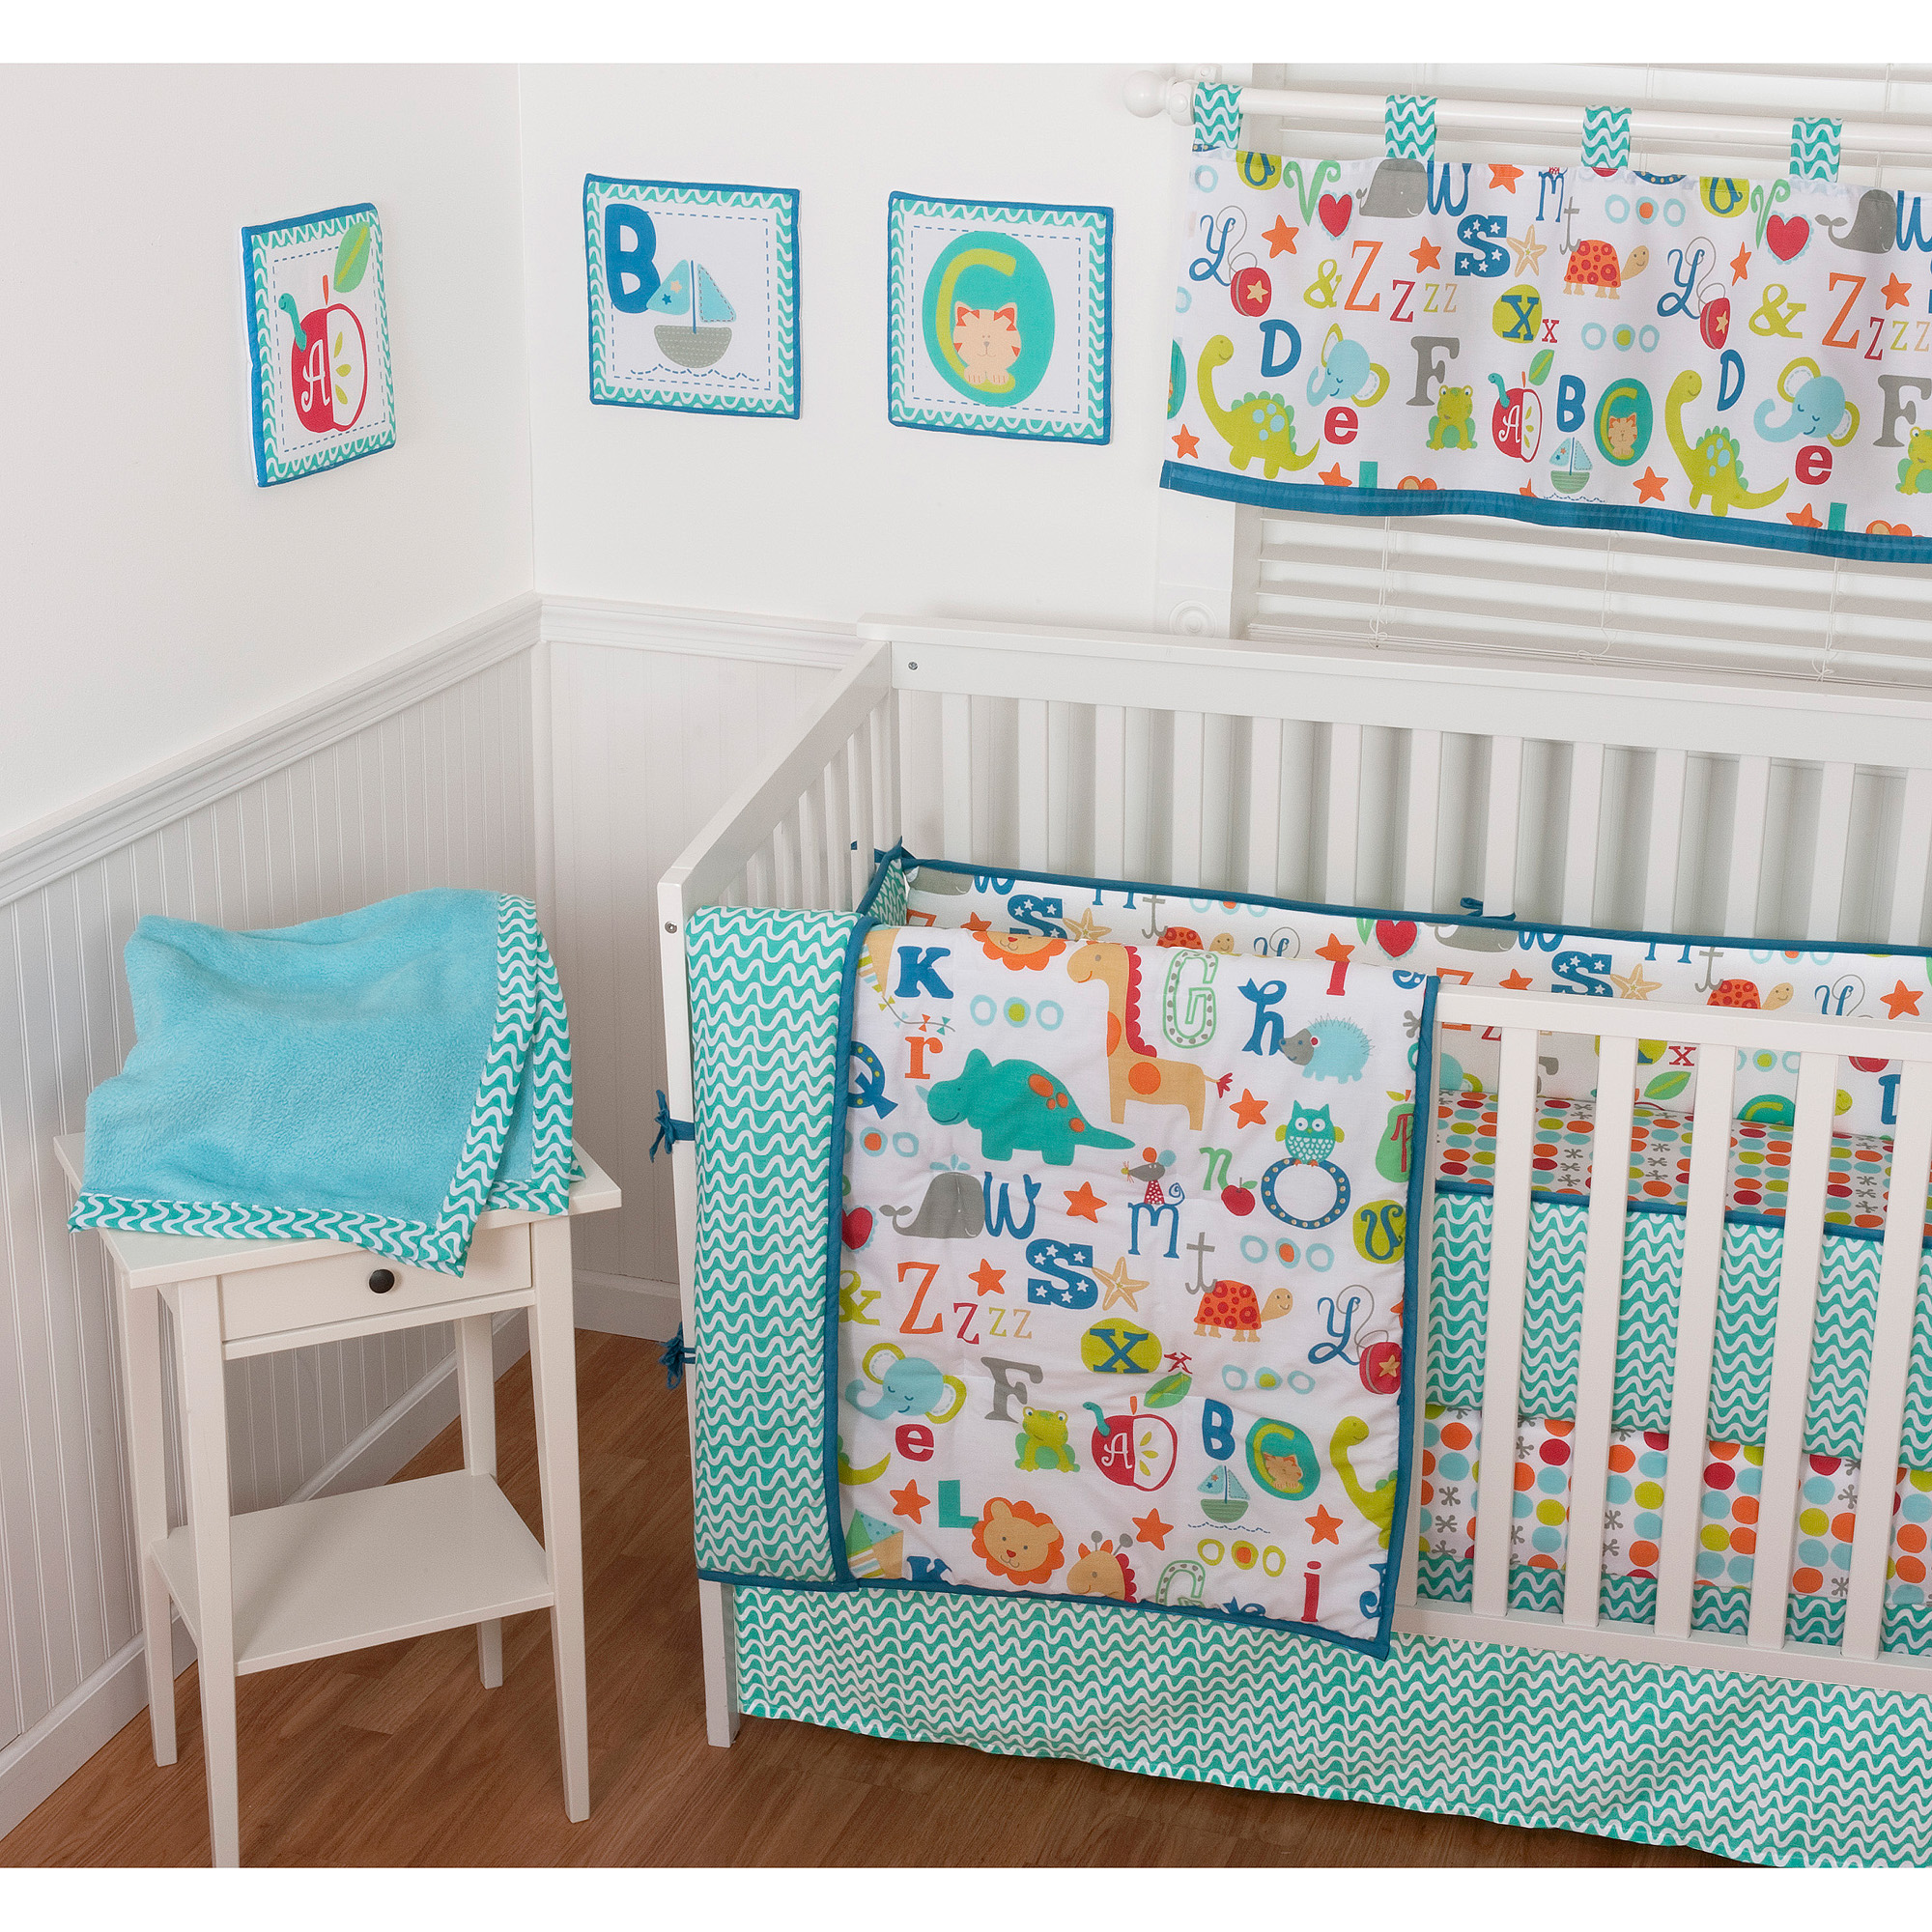 Sumersault ABC All Over 9-Piece Nursery in a Bag Crib Bedding Set with BONUS Bumper